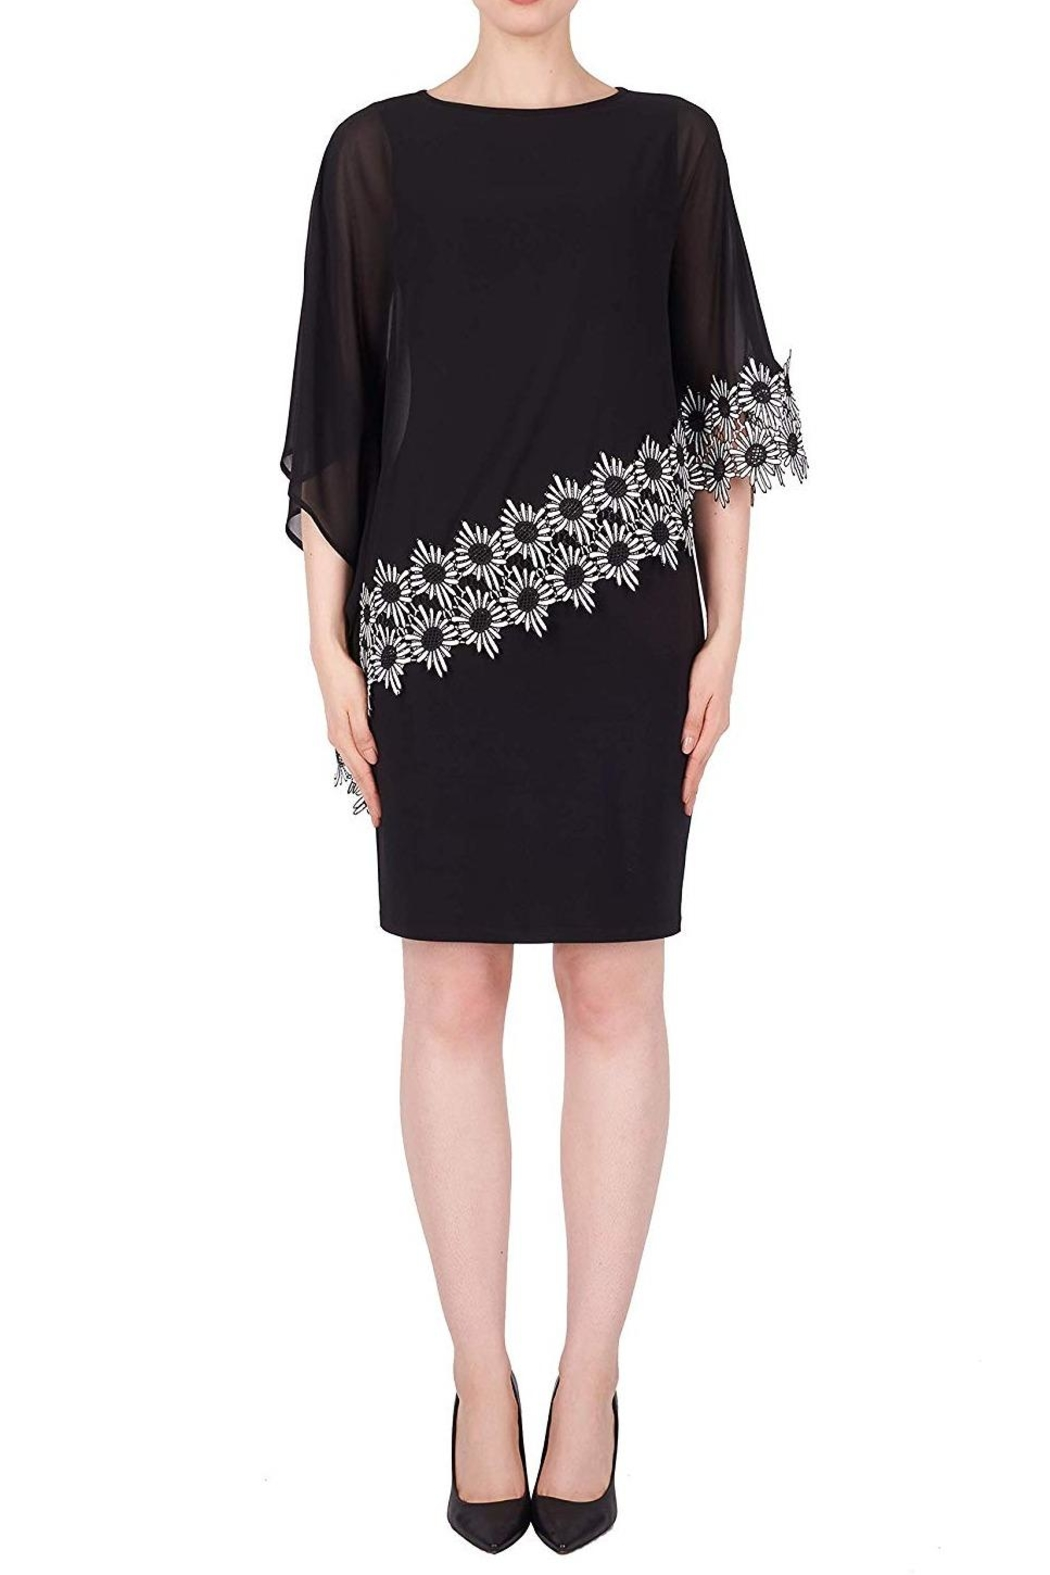 Joseph Ribkoff Black Scarf Dress - Main Image